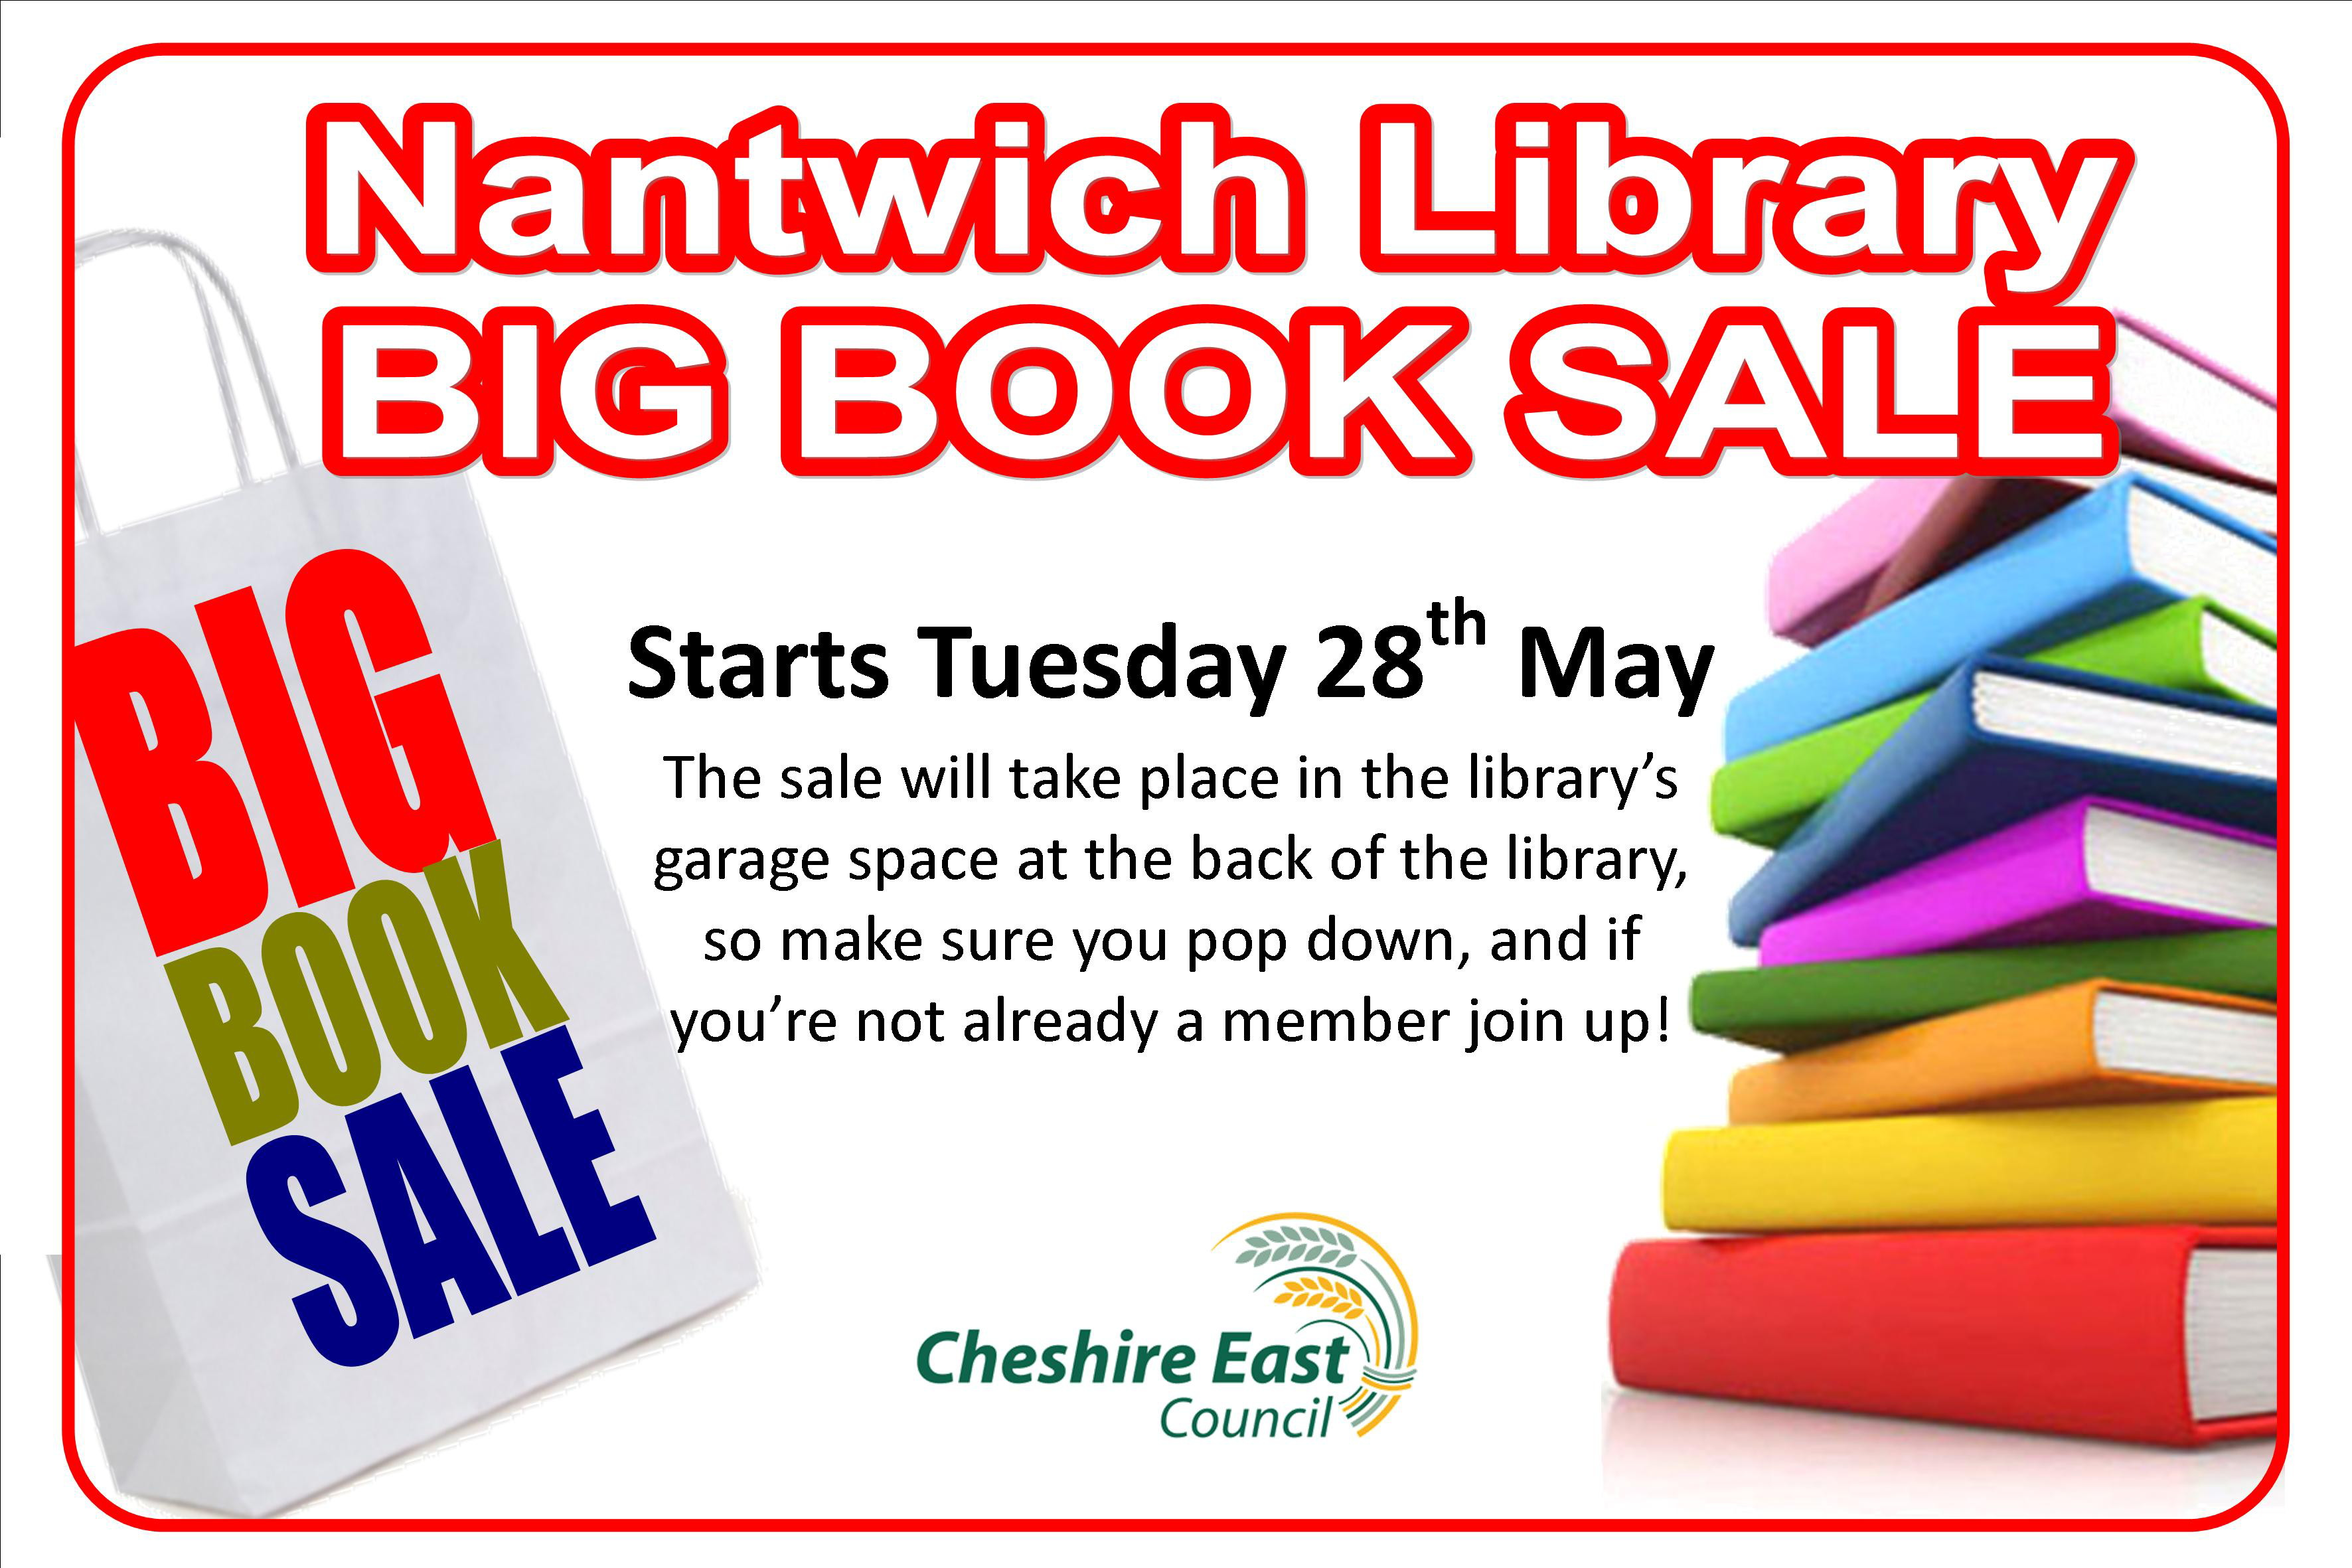 Nantwich Library launches two-week book sale